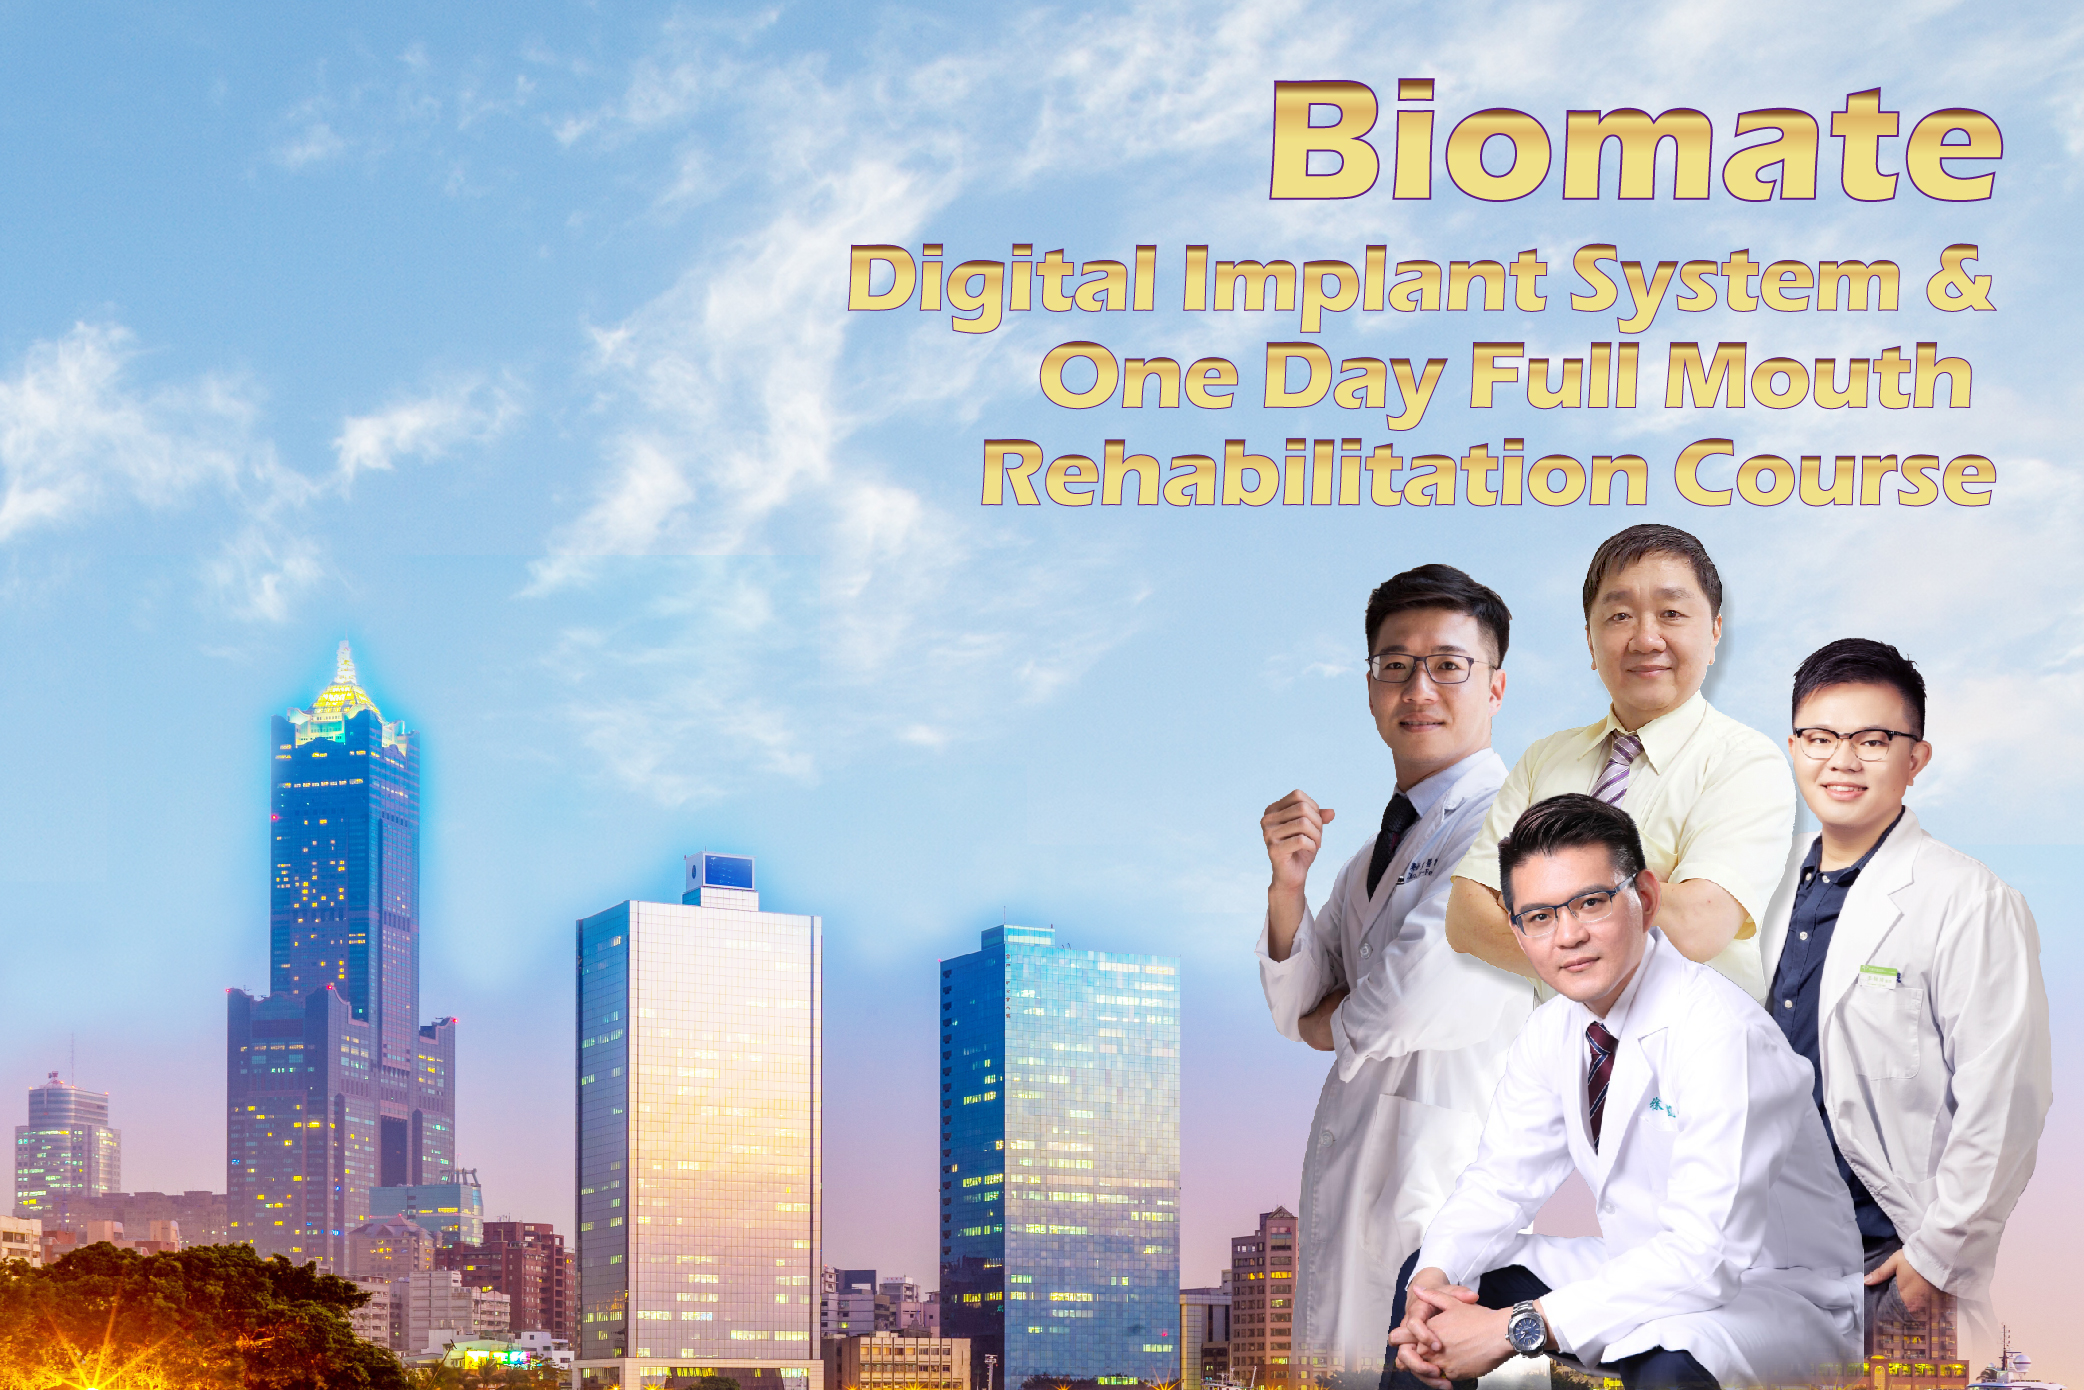 Digital implant system & one day full mouth rehabilitation surgery training course